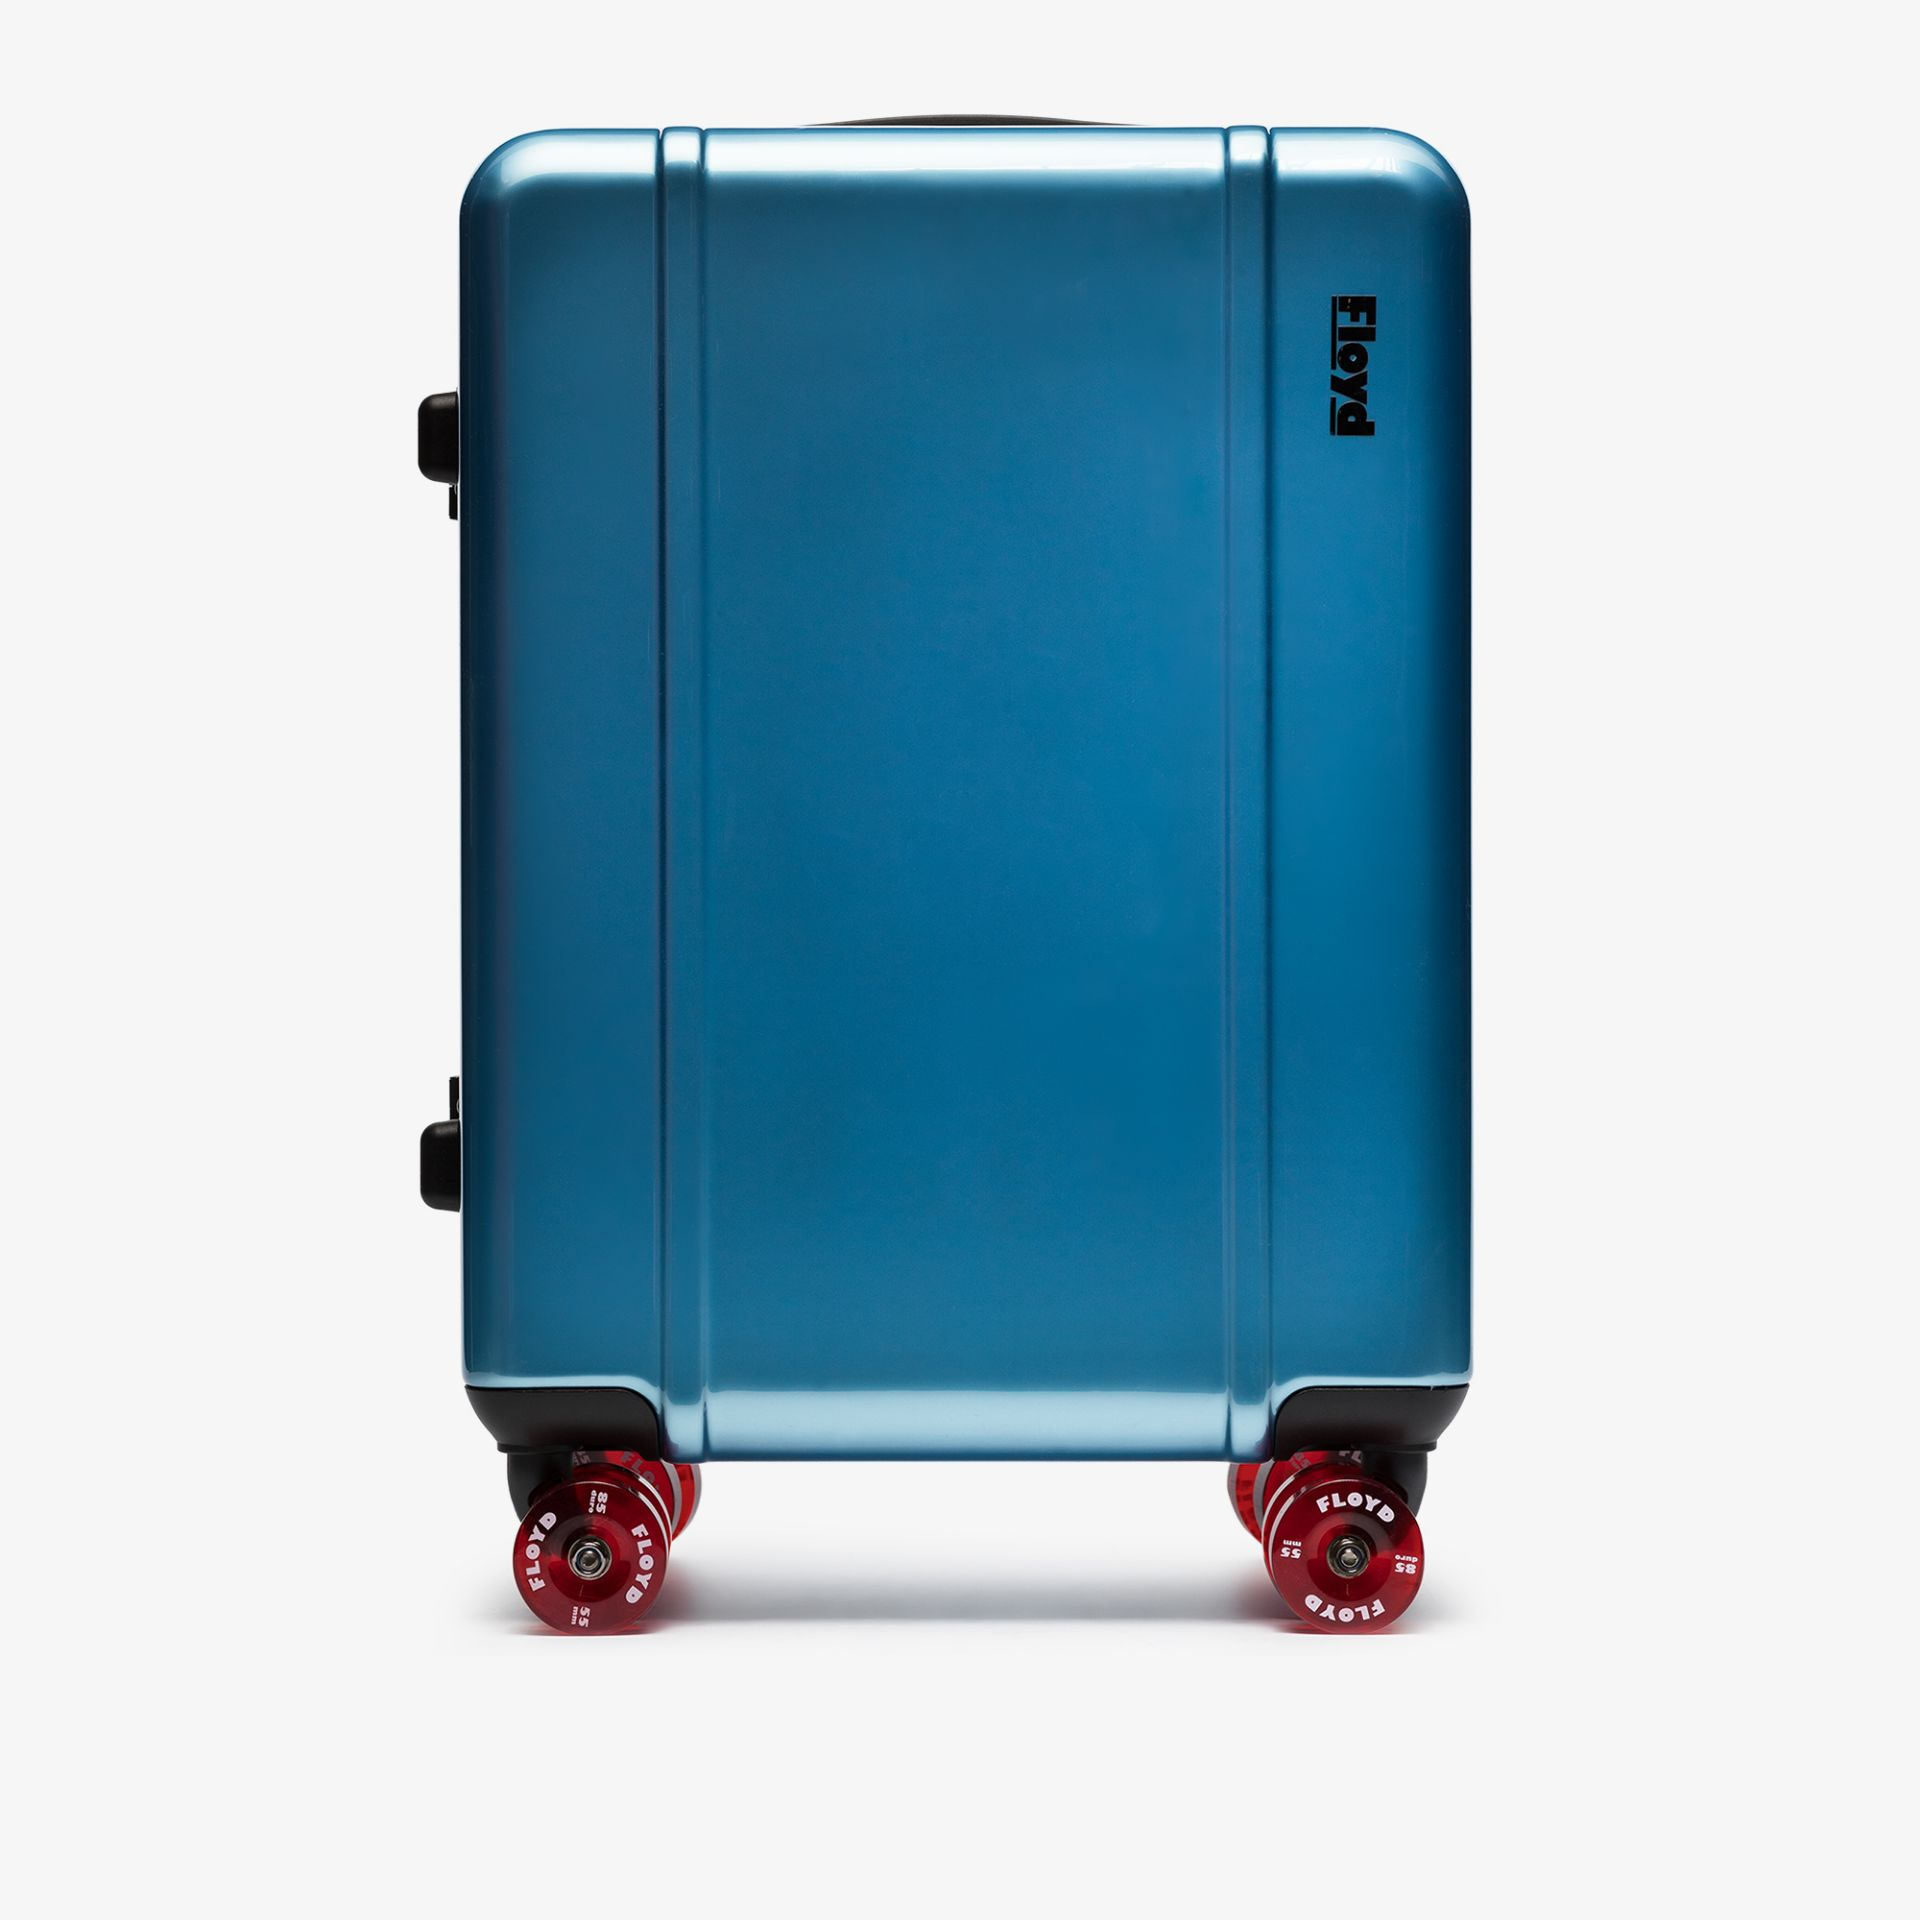 shop-top-desinger-suitcases-for-your-summer-vacation-floyd-matches-fashion